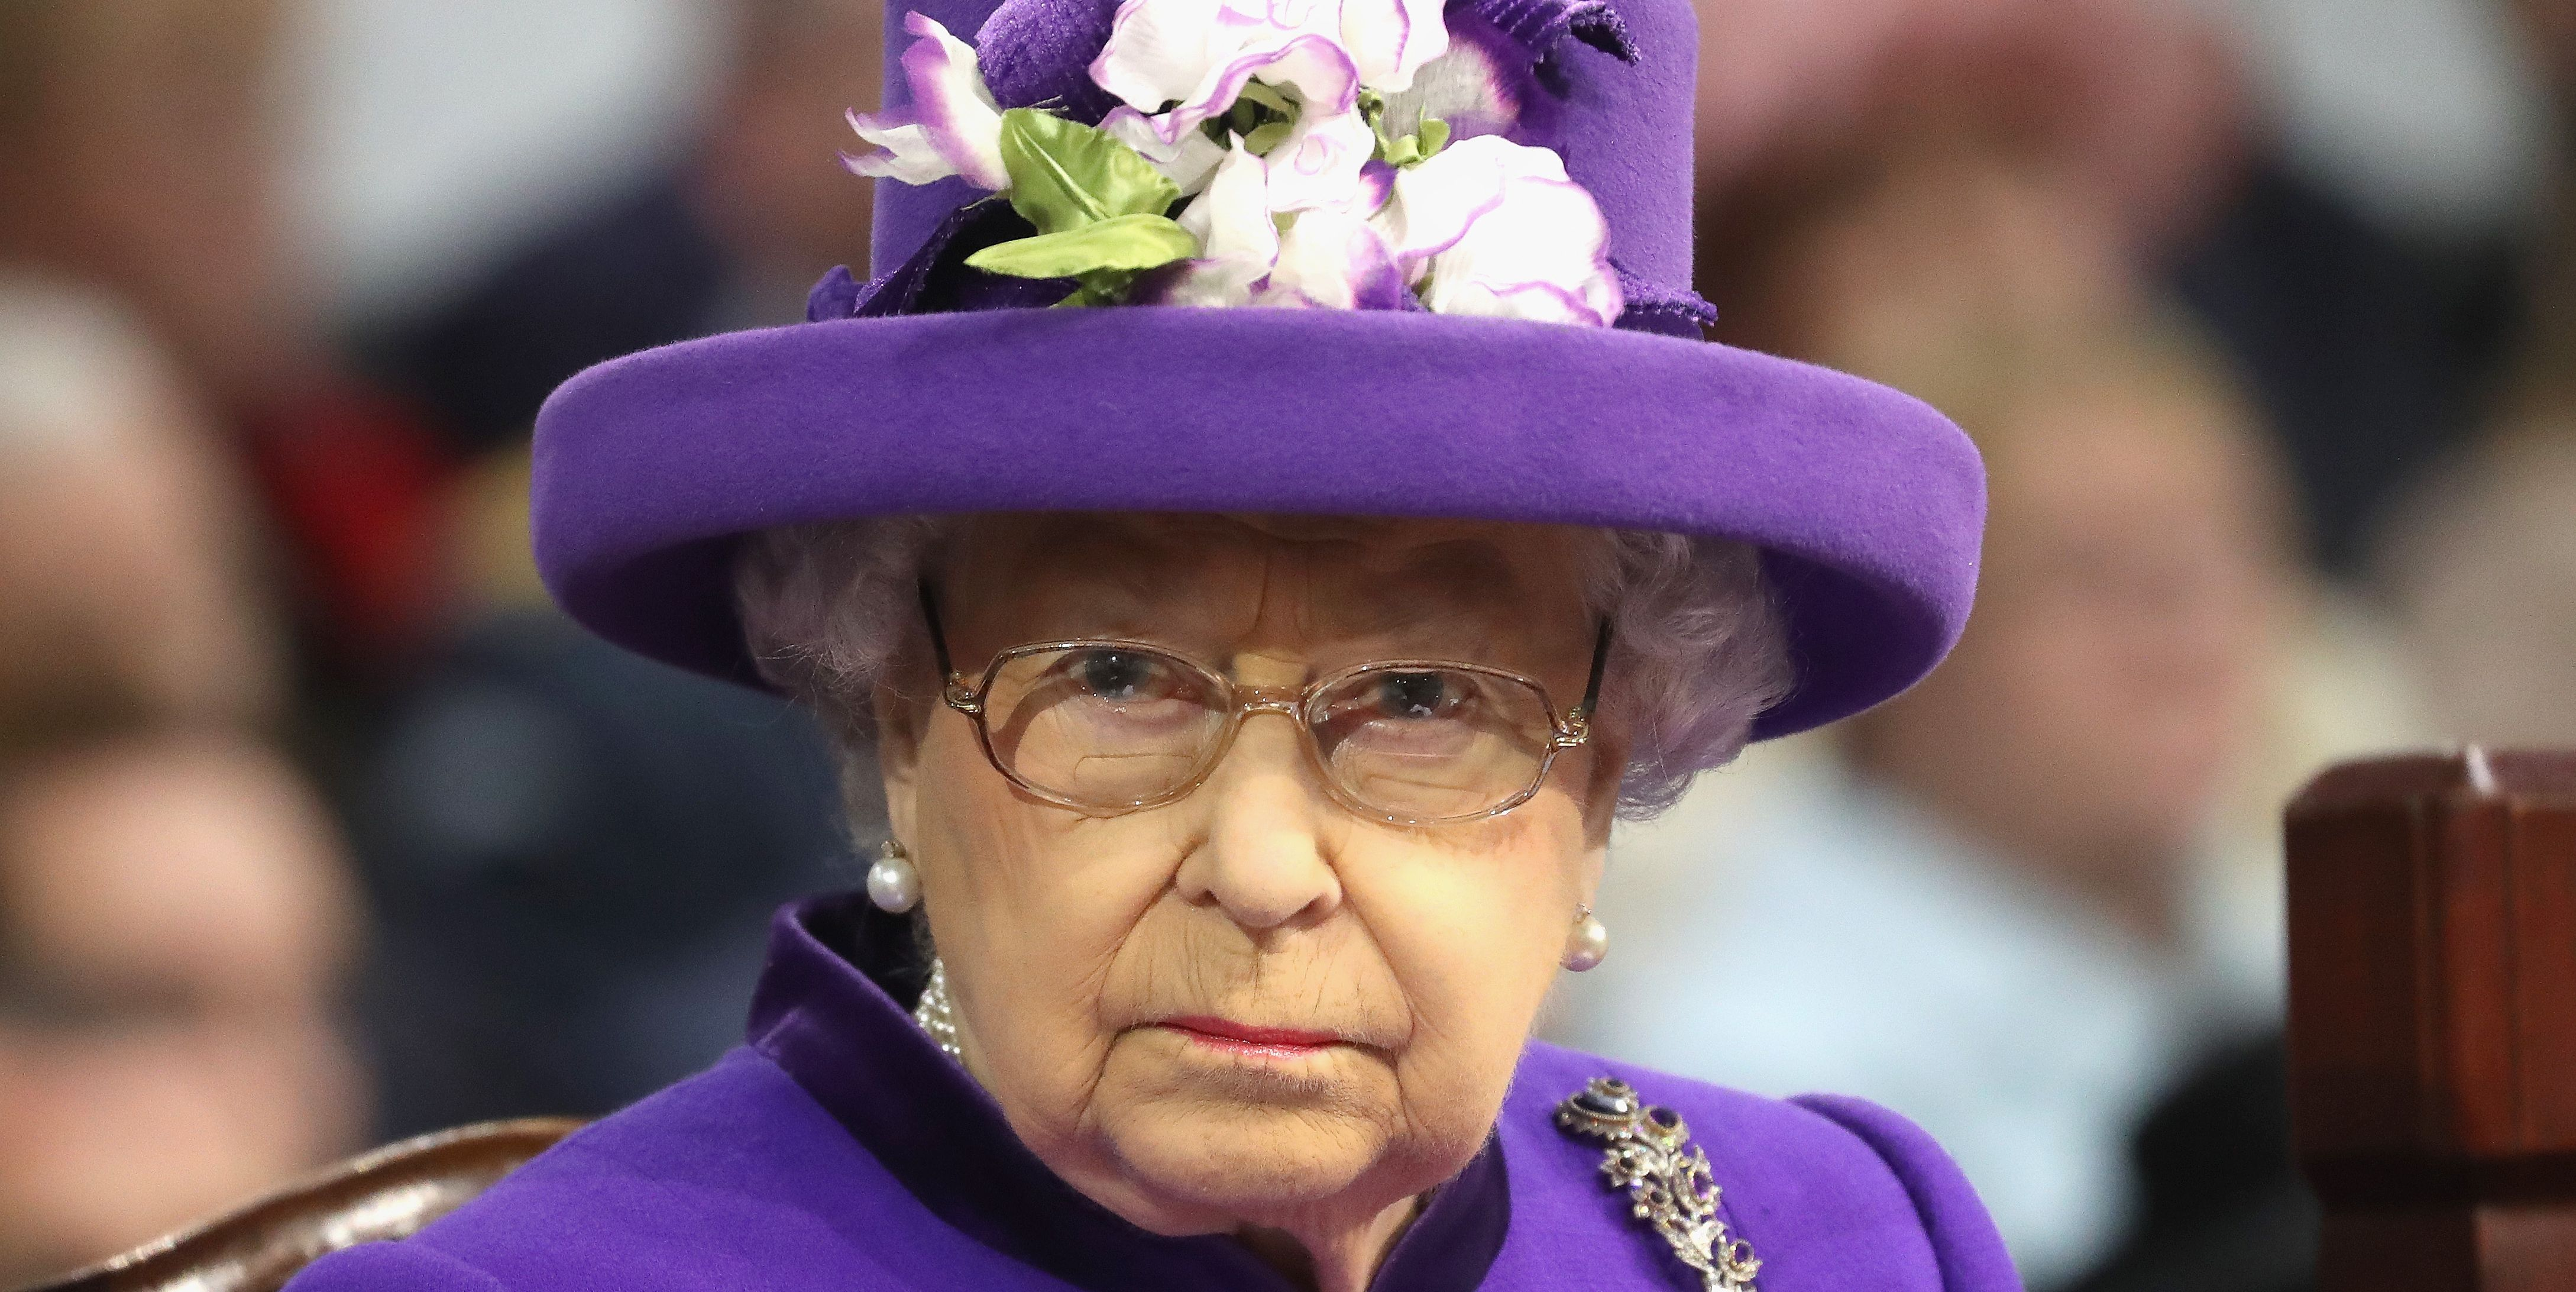 The Queen Fired Her Longtime Royal Bra-Fitter After She Wrote a Juicy Tell-All